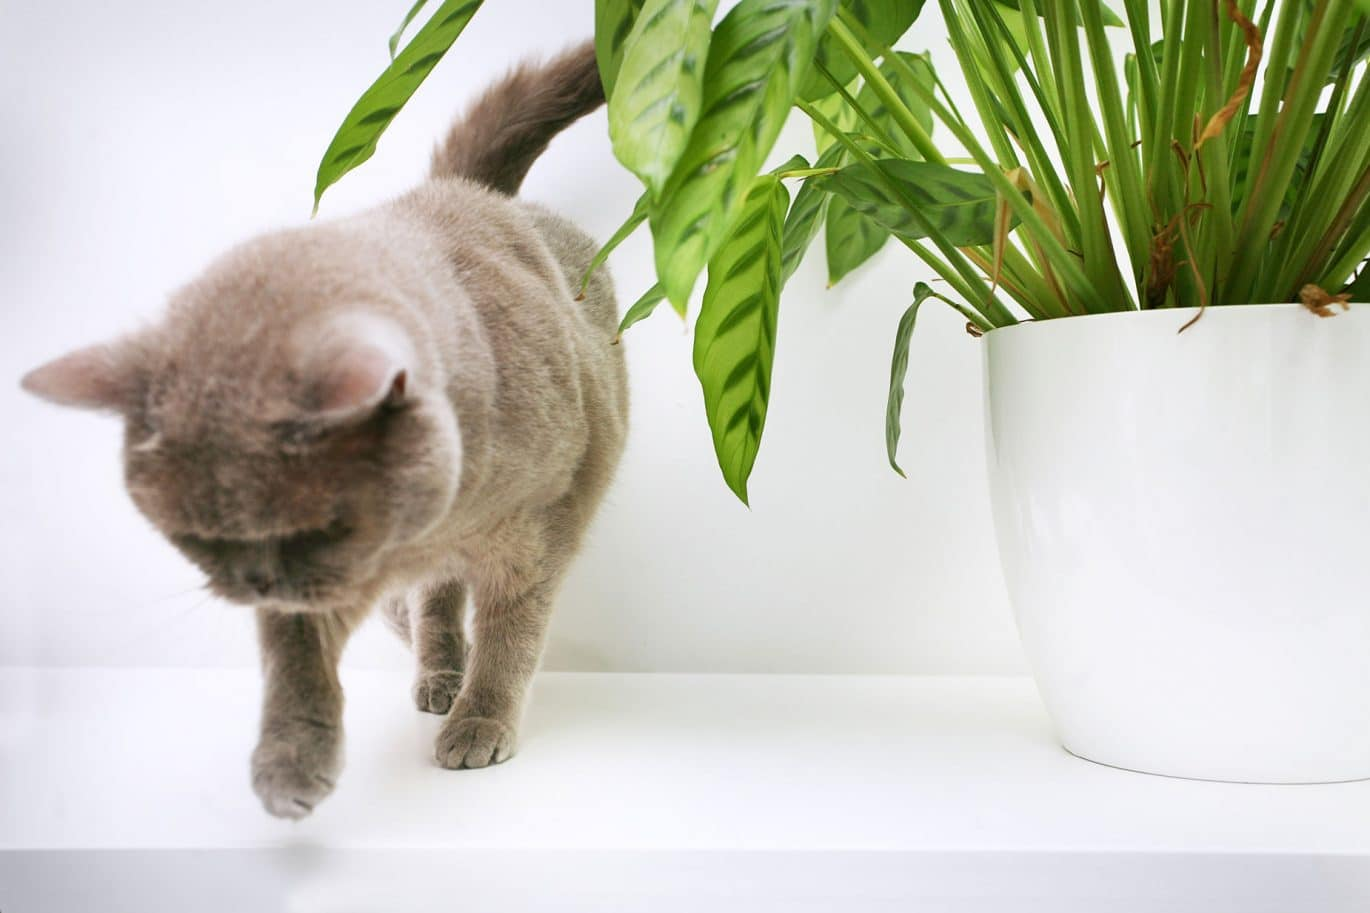 A cleaning customers grey cat jumps off a white dresser next to a bright green houseplant